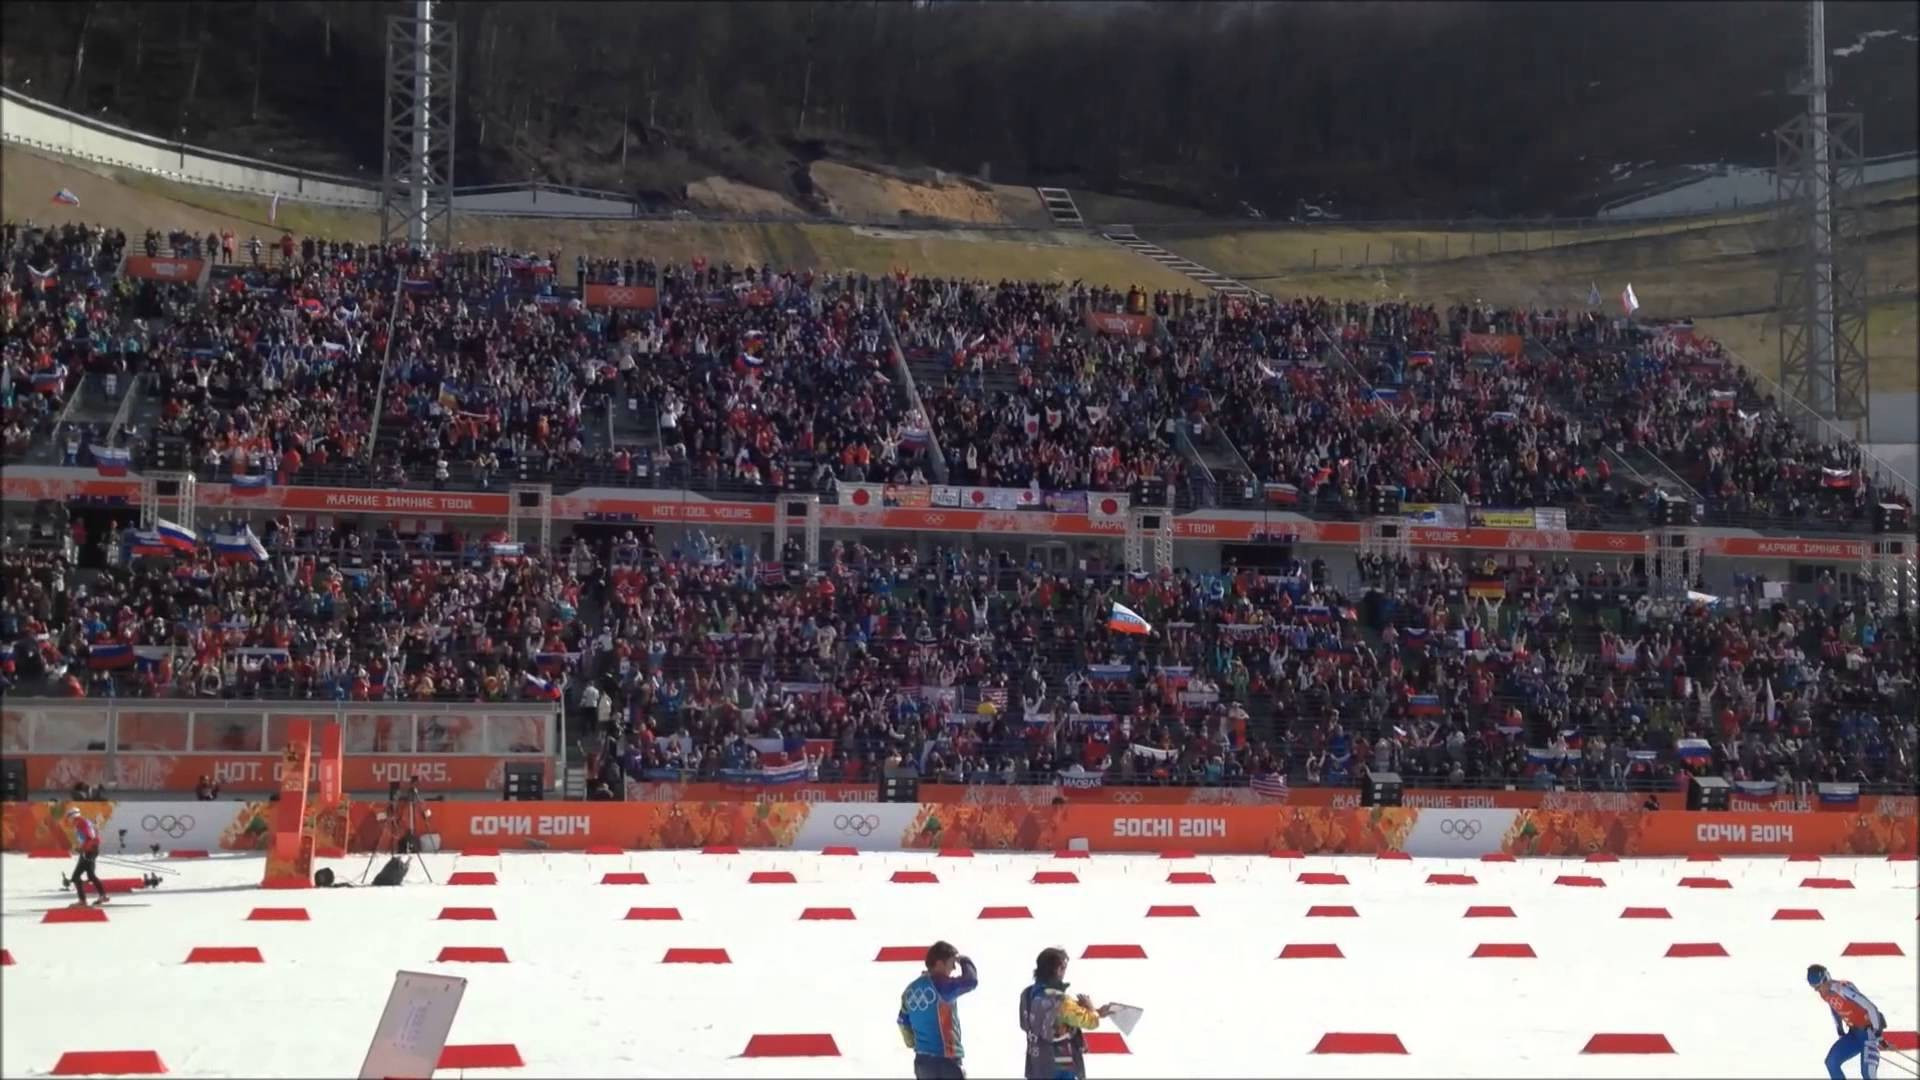 There were initial fears over low ticket sales for Sochi 2014 but crowds were generally good ©YouTube